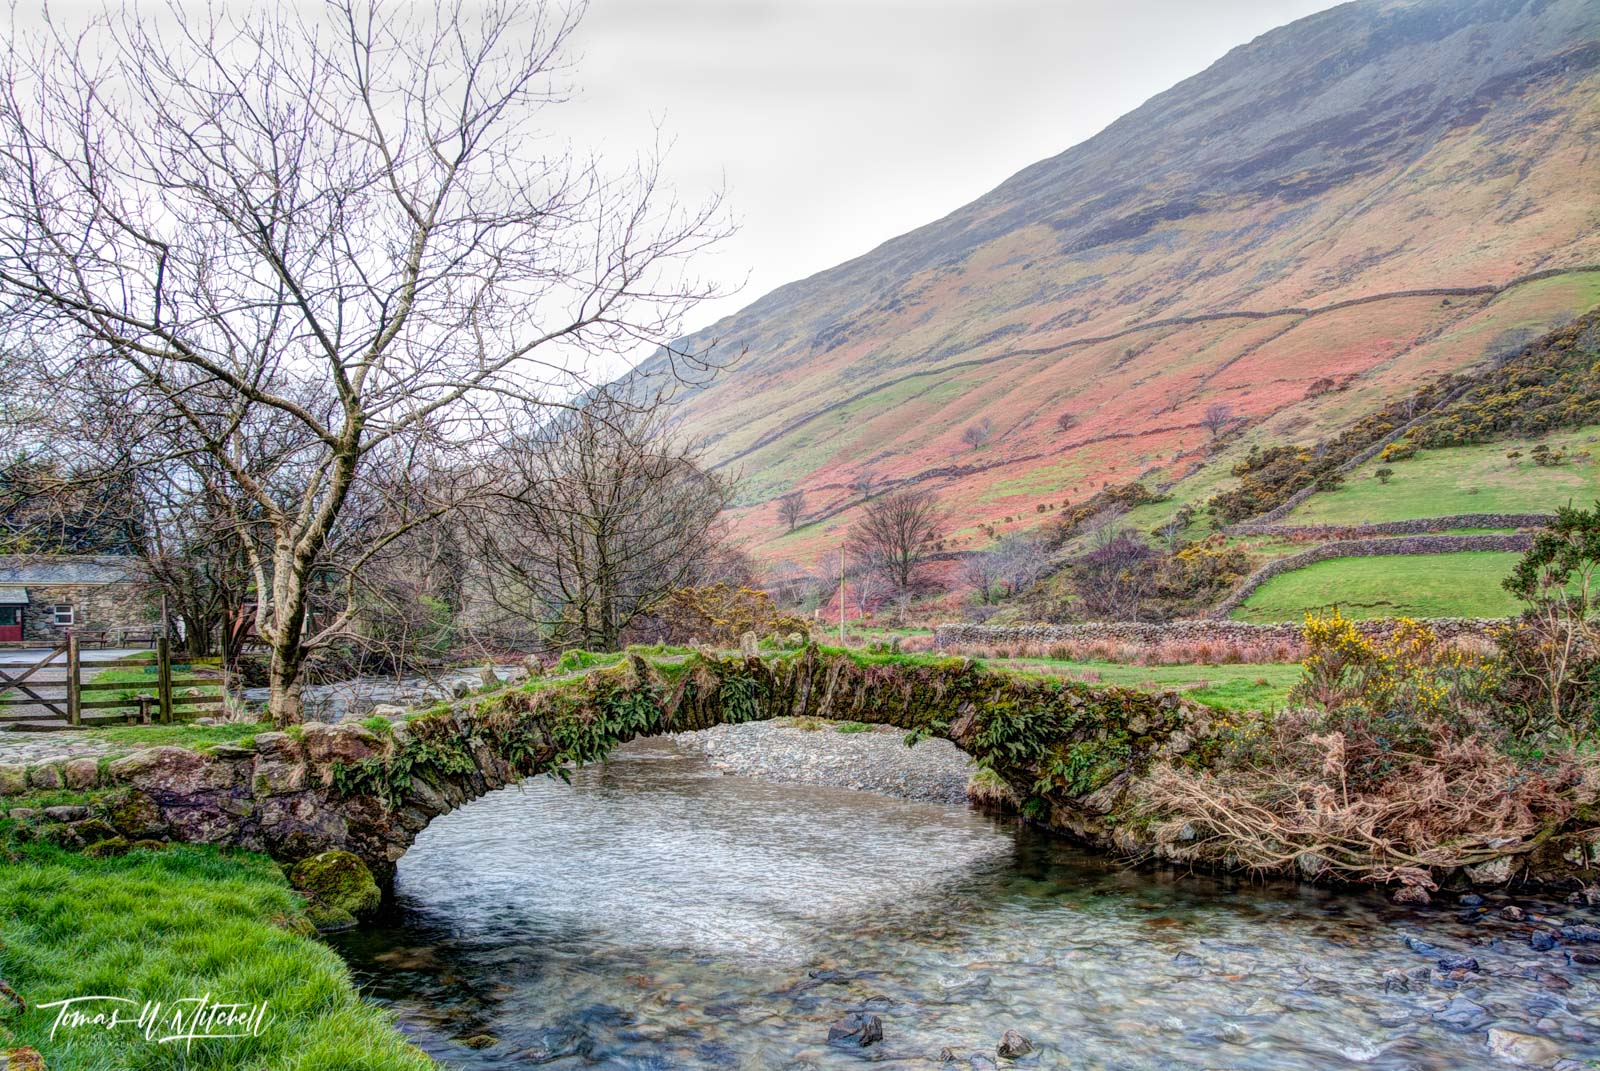 pack horse bridge, wasdale head, england, lake district, limited edition, museum grade, fine art, 1700's, stone bridge, old bridge, bridge, colors, sheep fields, rock walls, hillside, yellow, gorse, f, photo